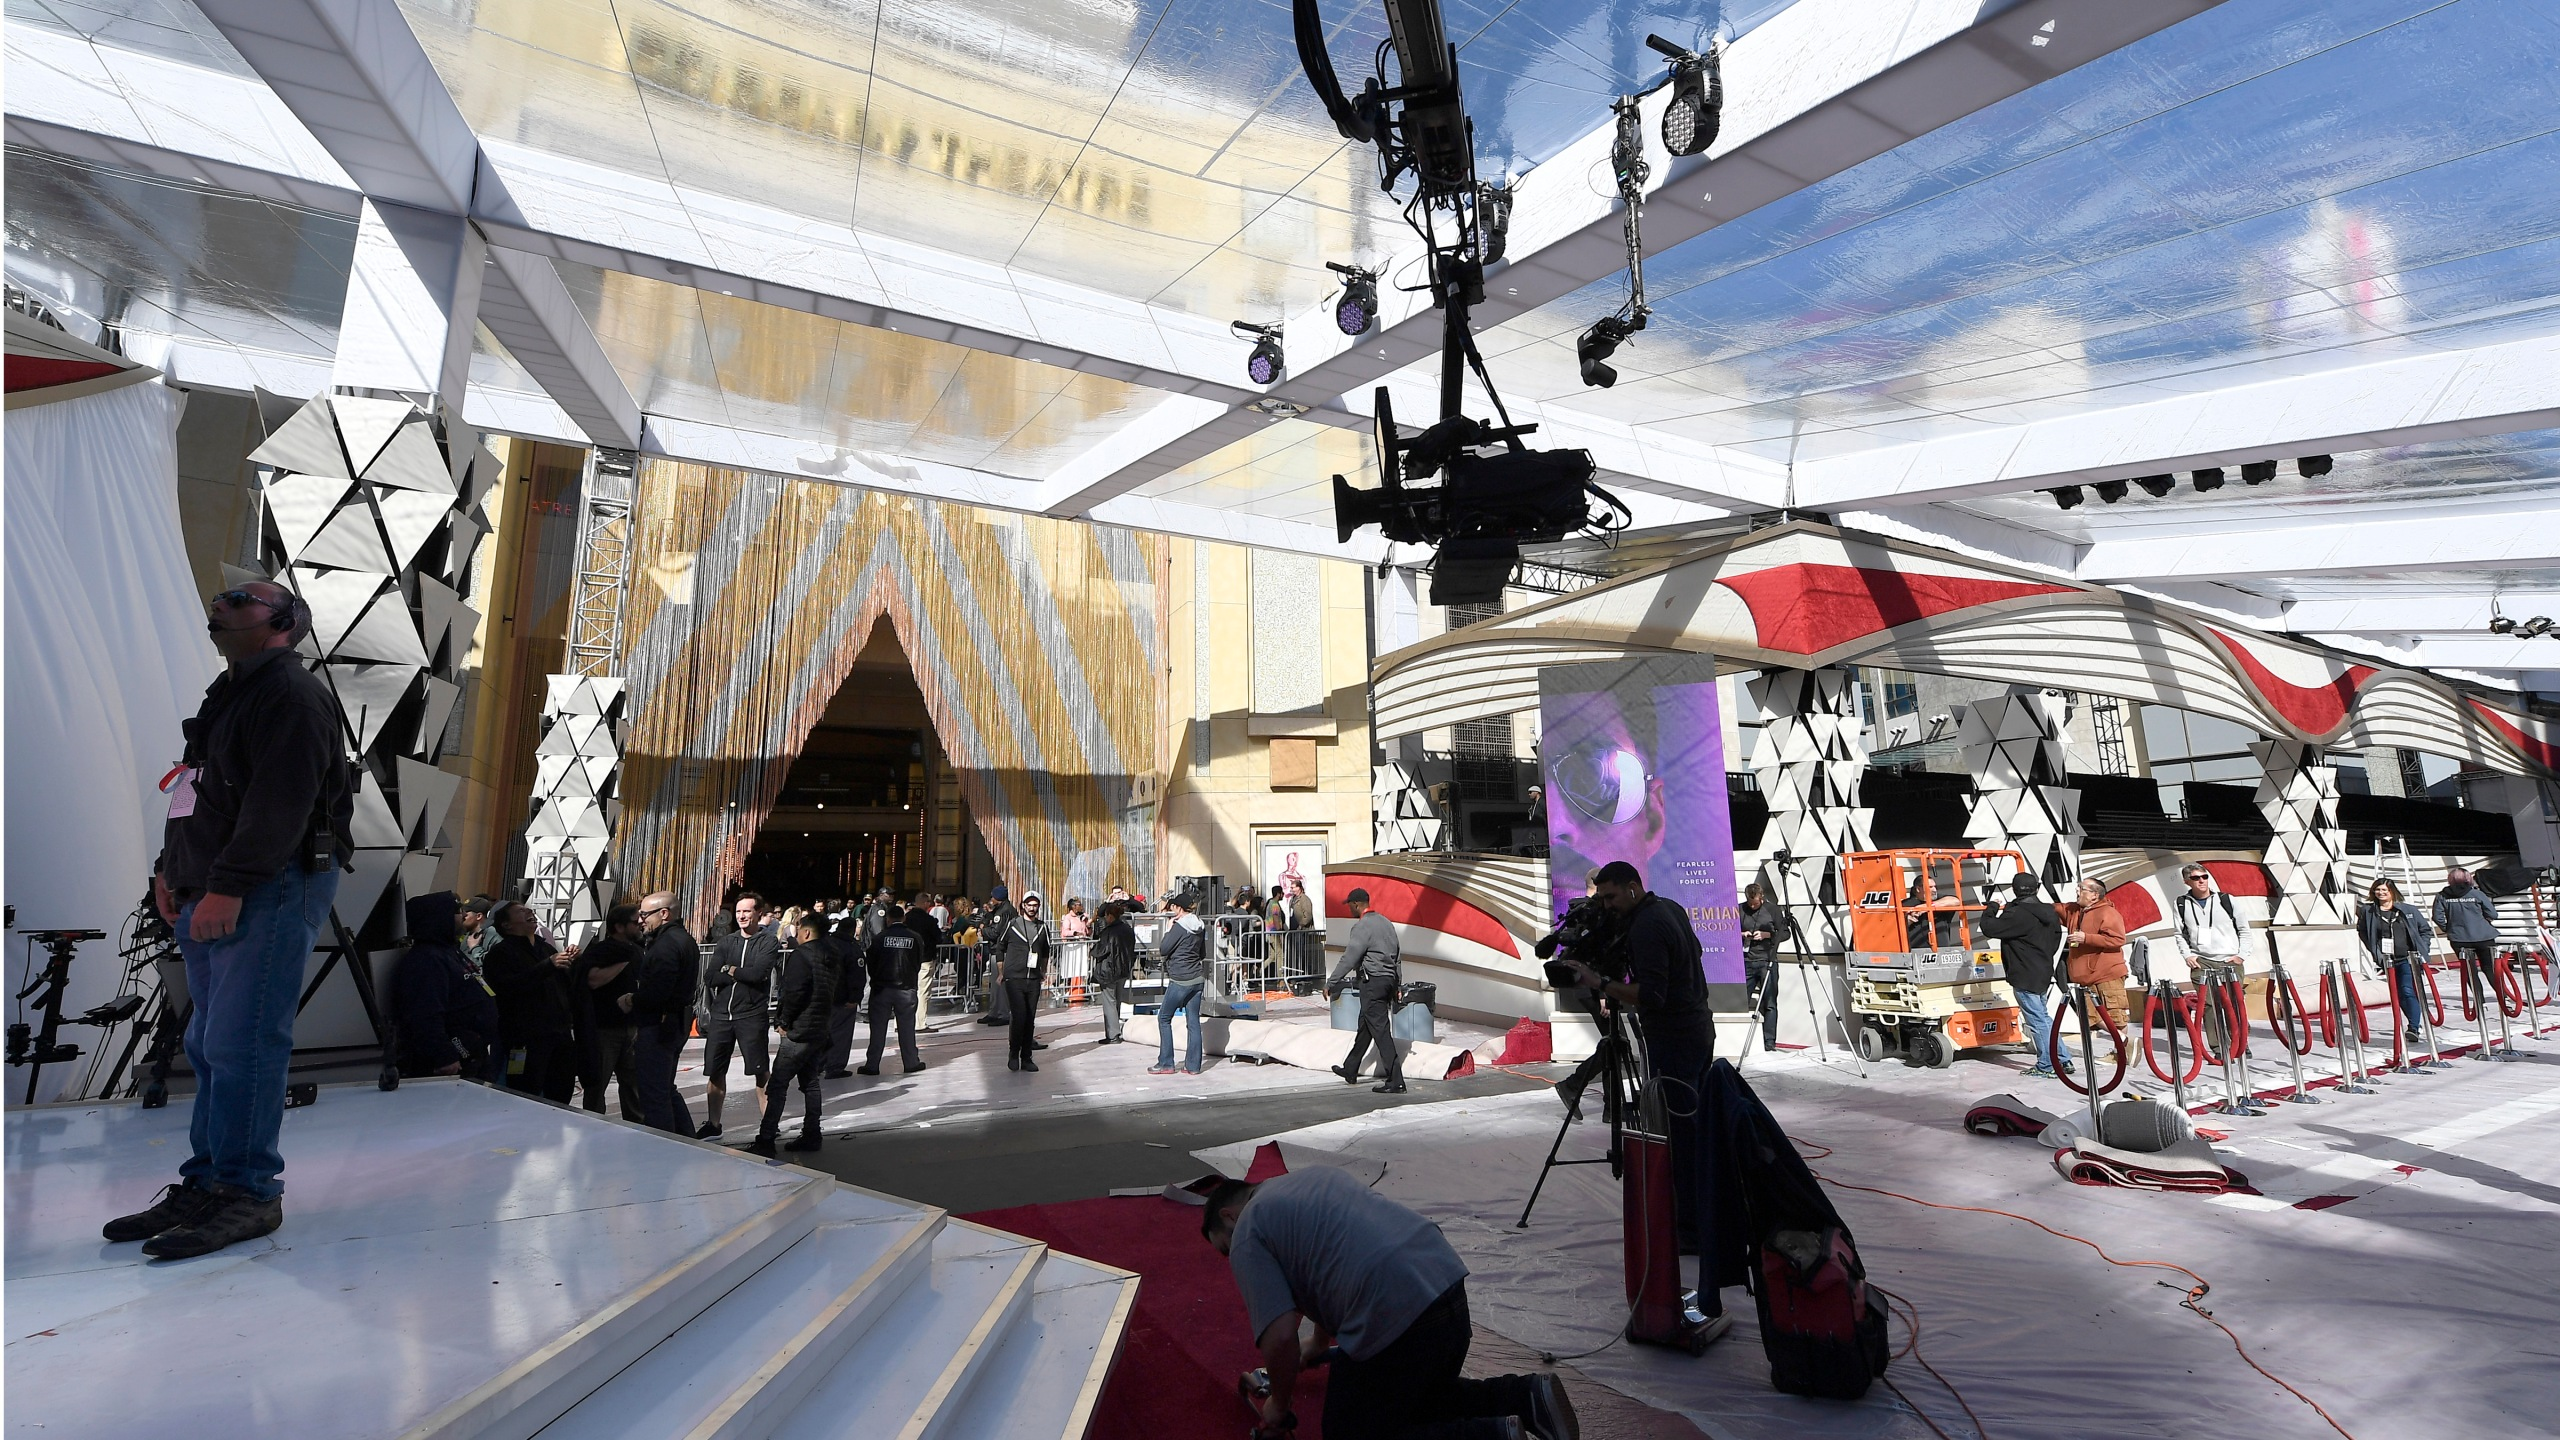 Workers make preparations for the 91st Academy Awards at the Dolby Theatre on Feb. 22, 2019, in Hollywood. (Credit: Kevork Djansezian/Getty Images)